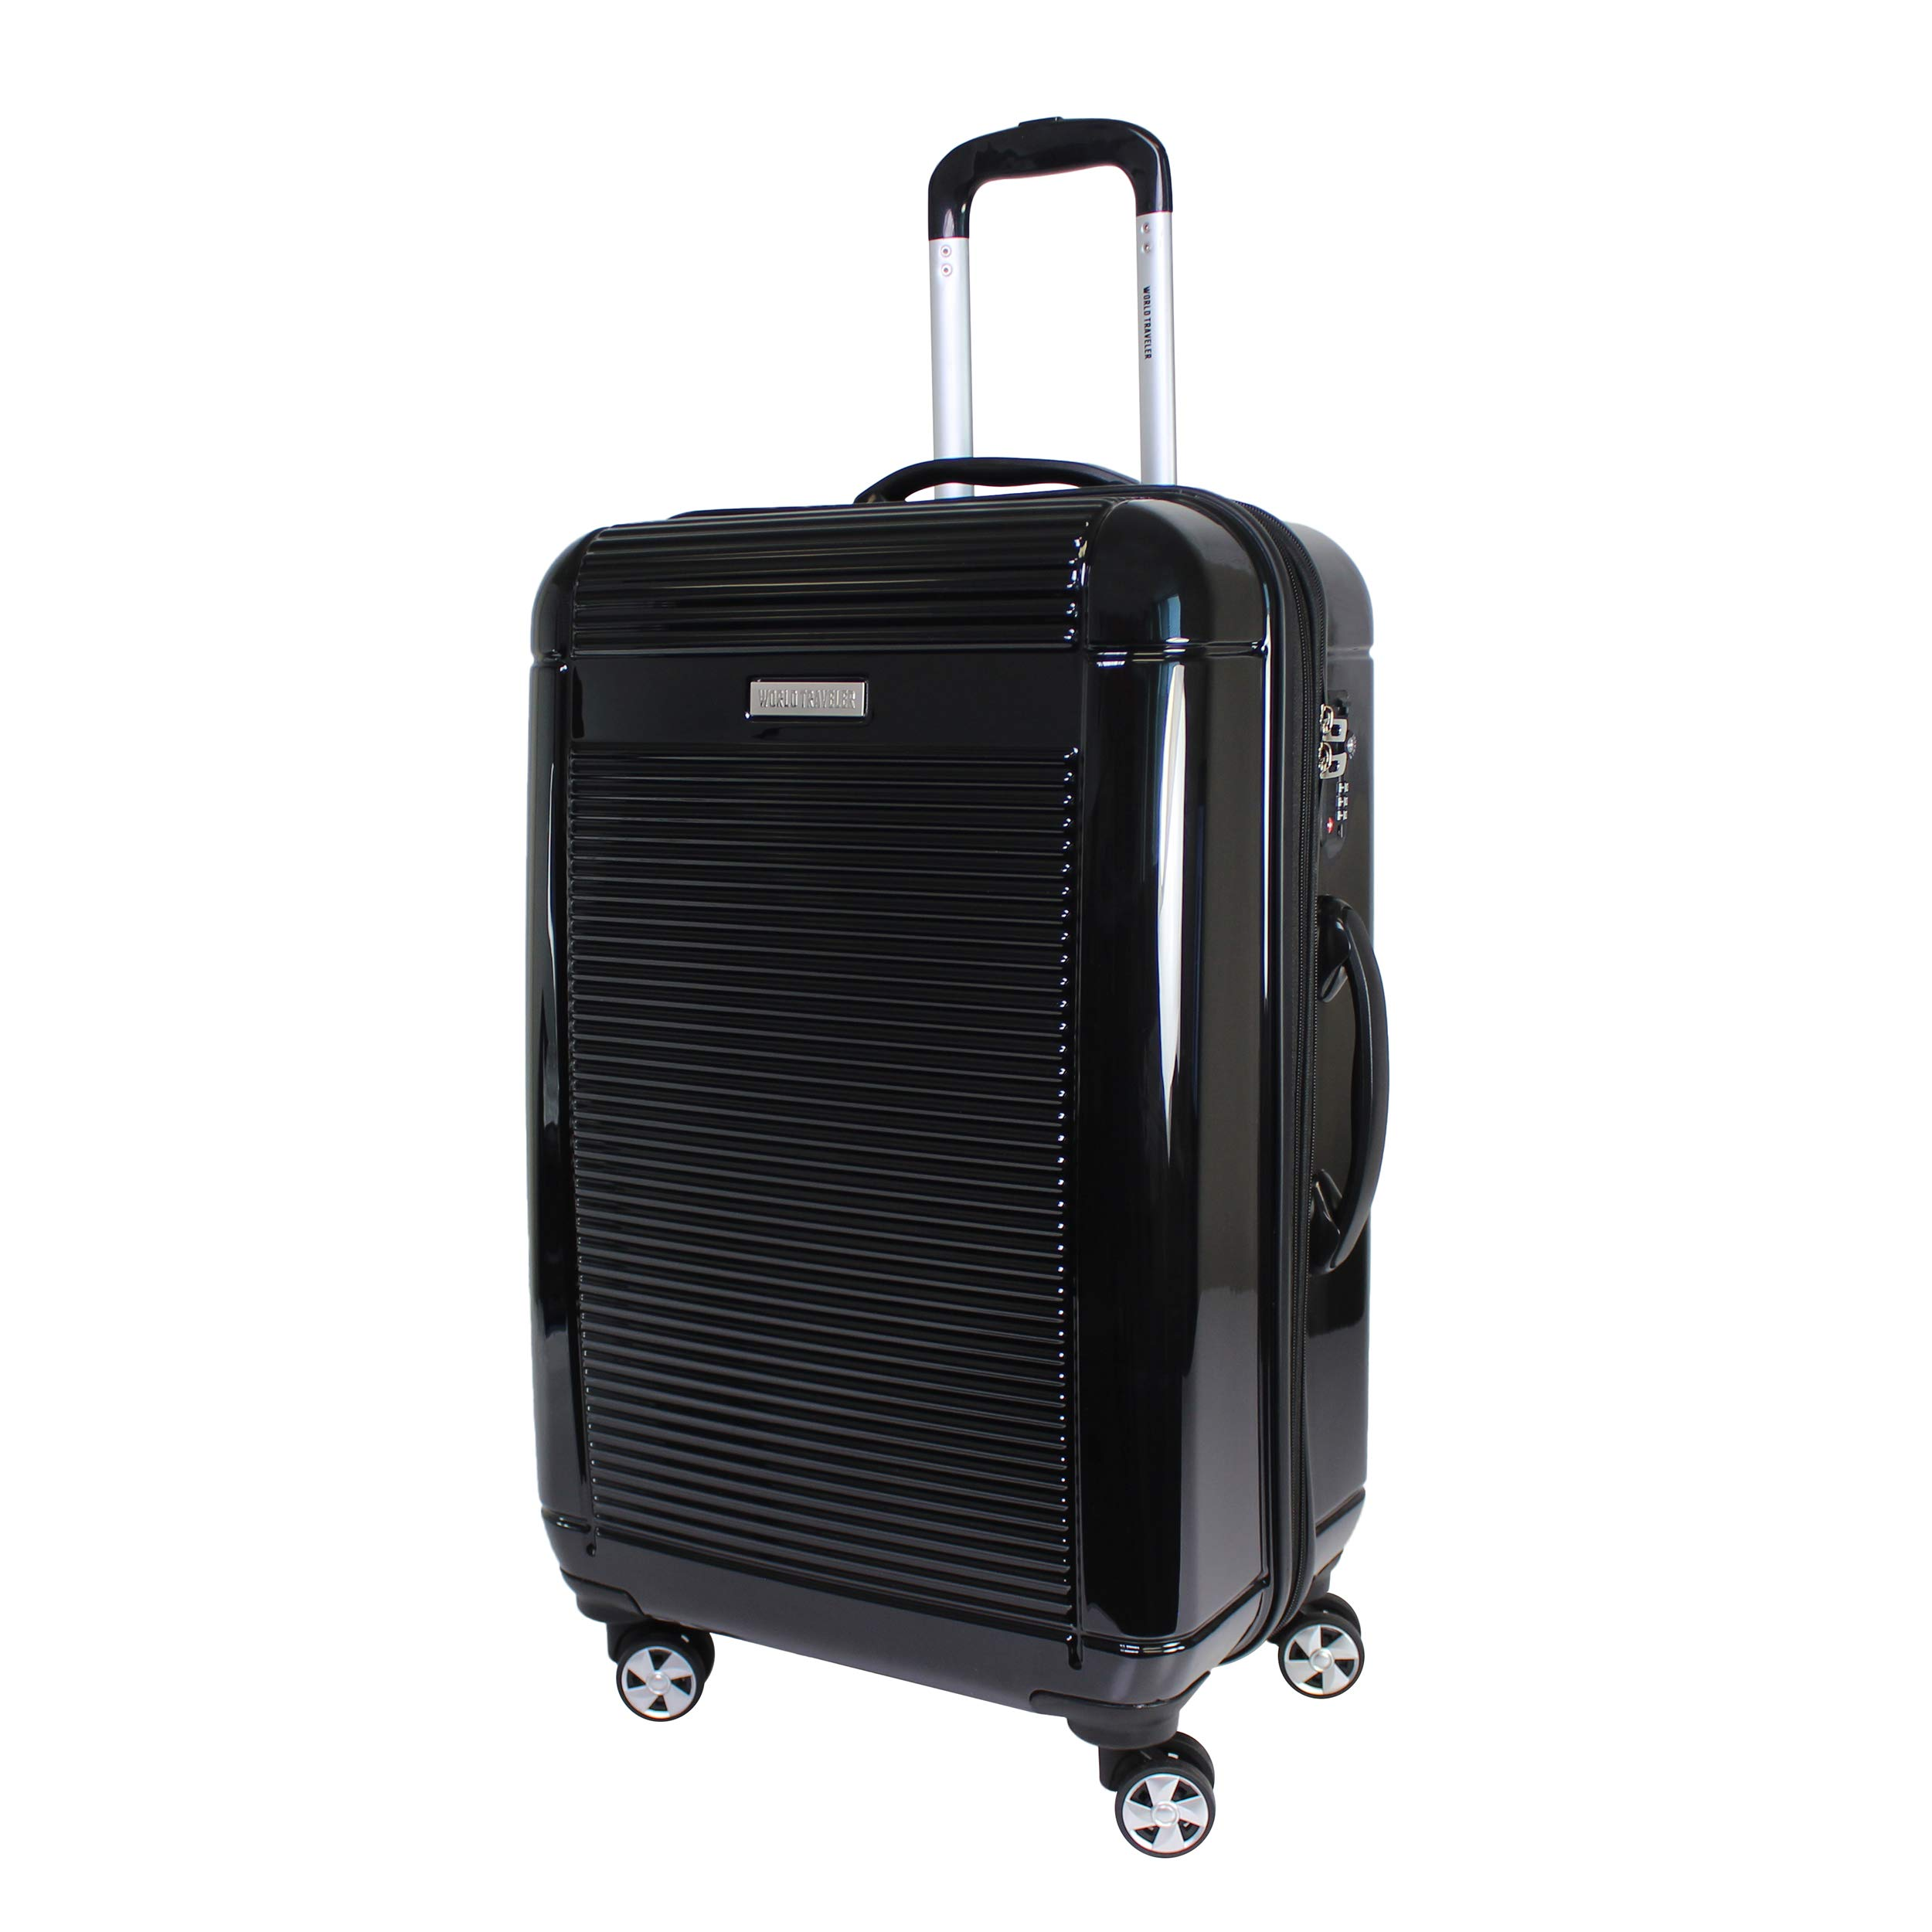 World Traveler Regal Hardside Lightweight Spinner Luggage Suitcase - Black (24-Inch)